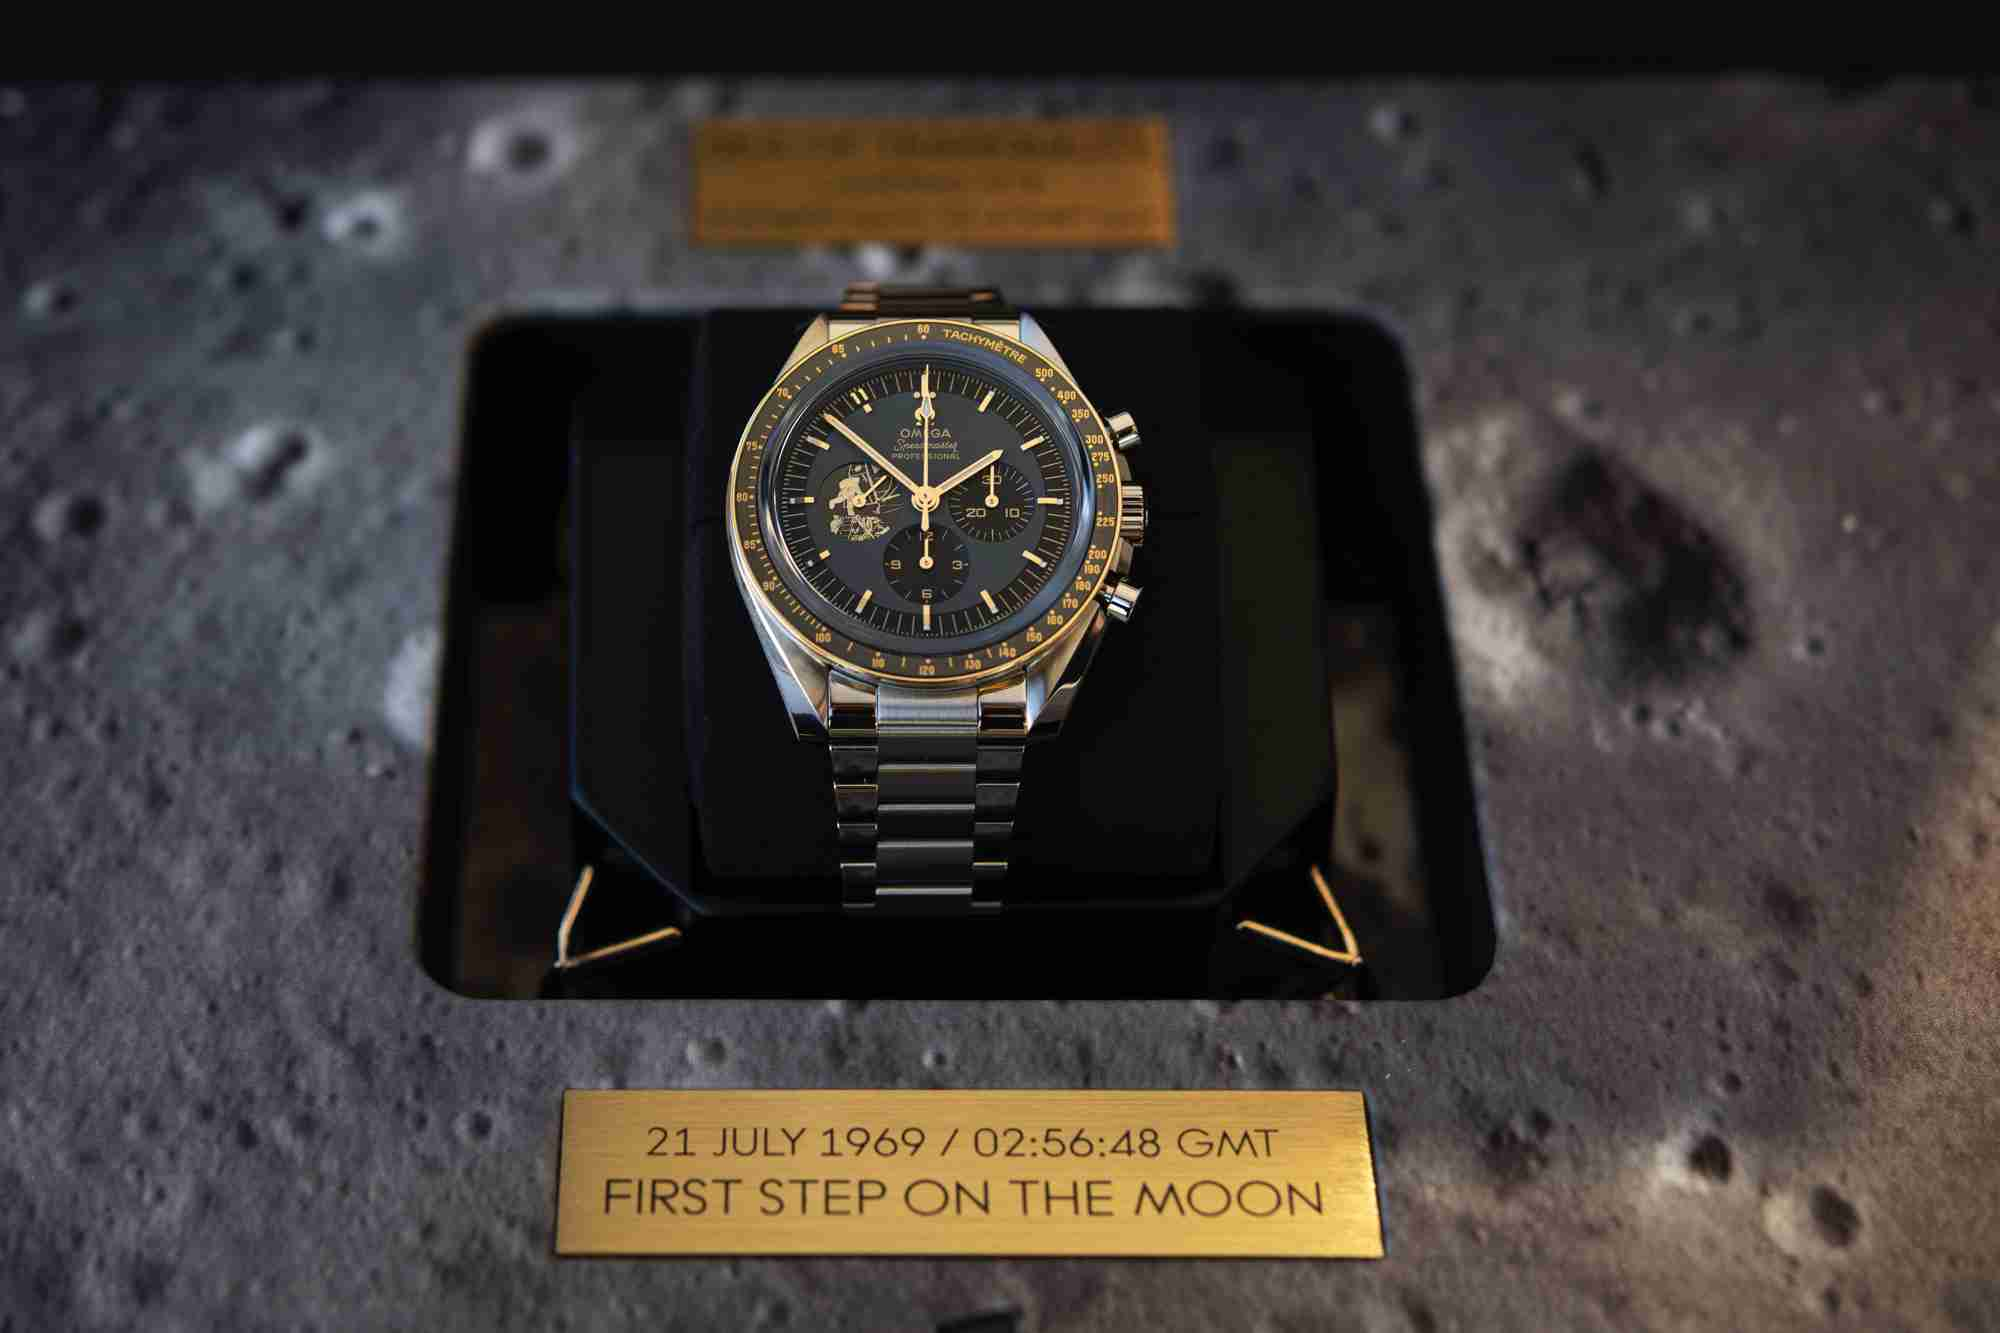 OMEGA Speedmaster Professional Moonwatch 50th Anniversary Edition Replica